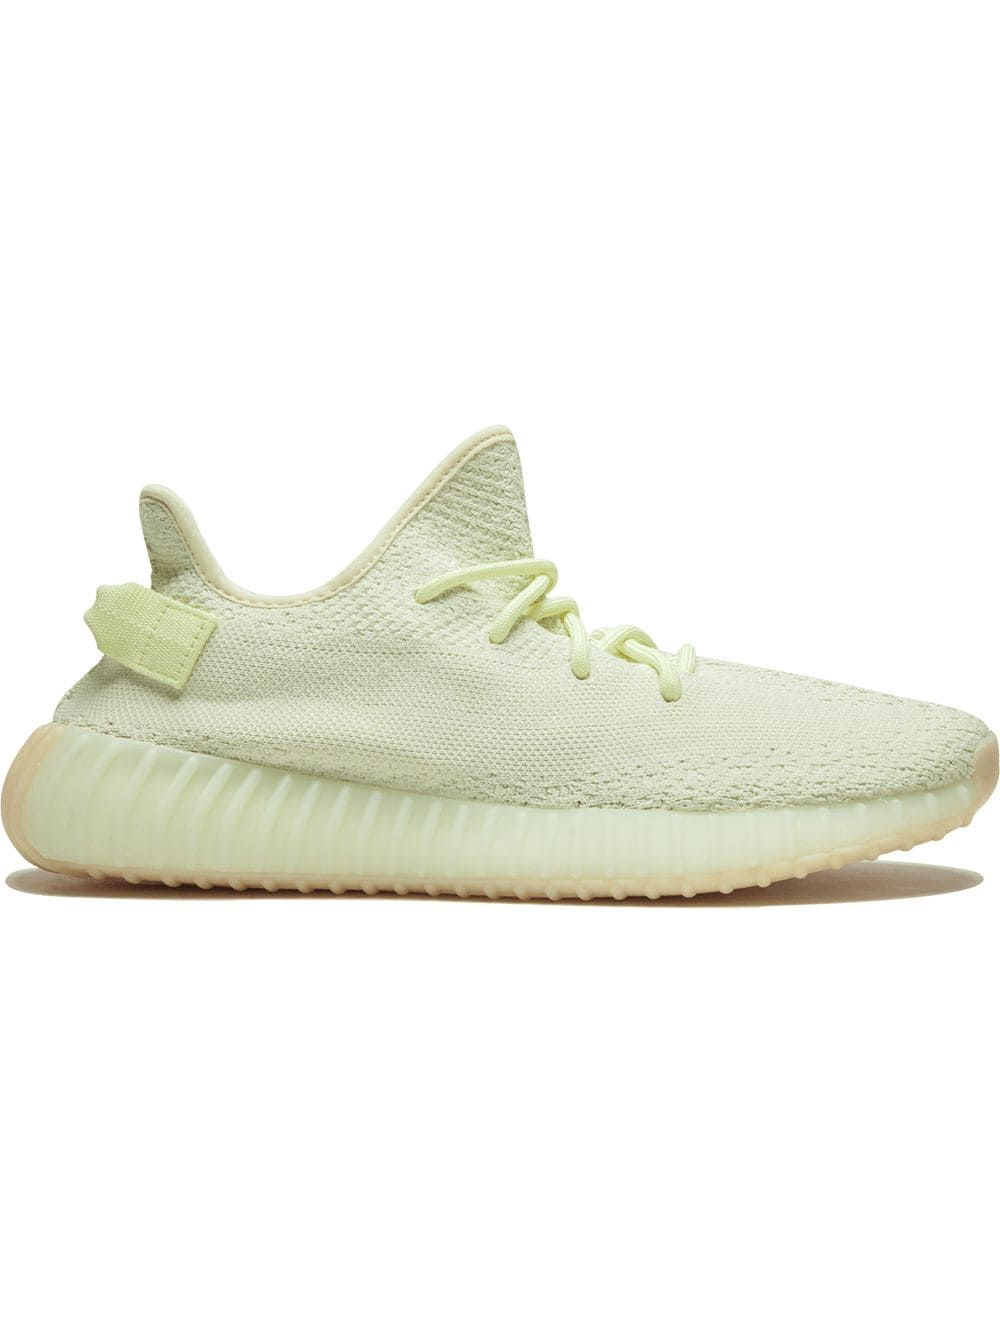 newest 55a95 a2821 Adidas adidas x Yeezy Boost 350 V2 sneakers - Neutrals ...